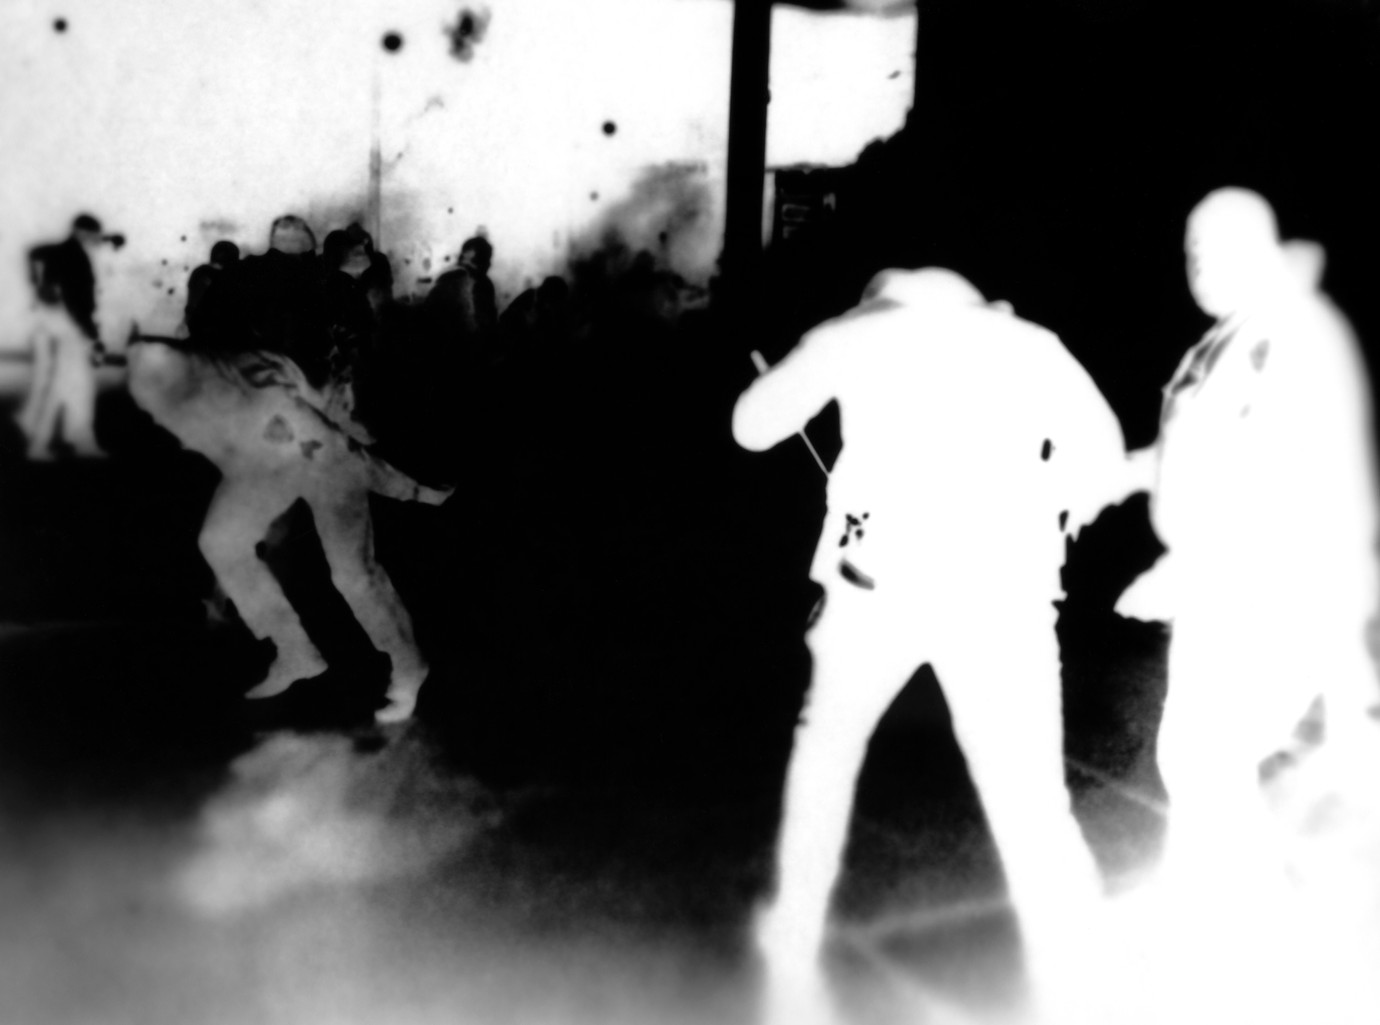 """Kristine Thompson, """"Images Seen to Images Felt"""" (detail - """"Teargas""""), 2019. Gelatin silver print photogram exposed by the light of a laptop screen, mounted to dibond. Image courtesy of artst"""